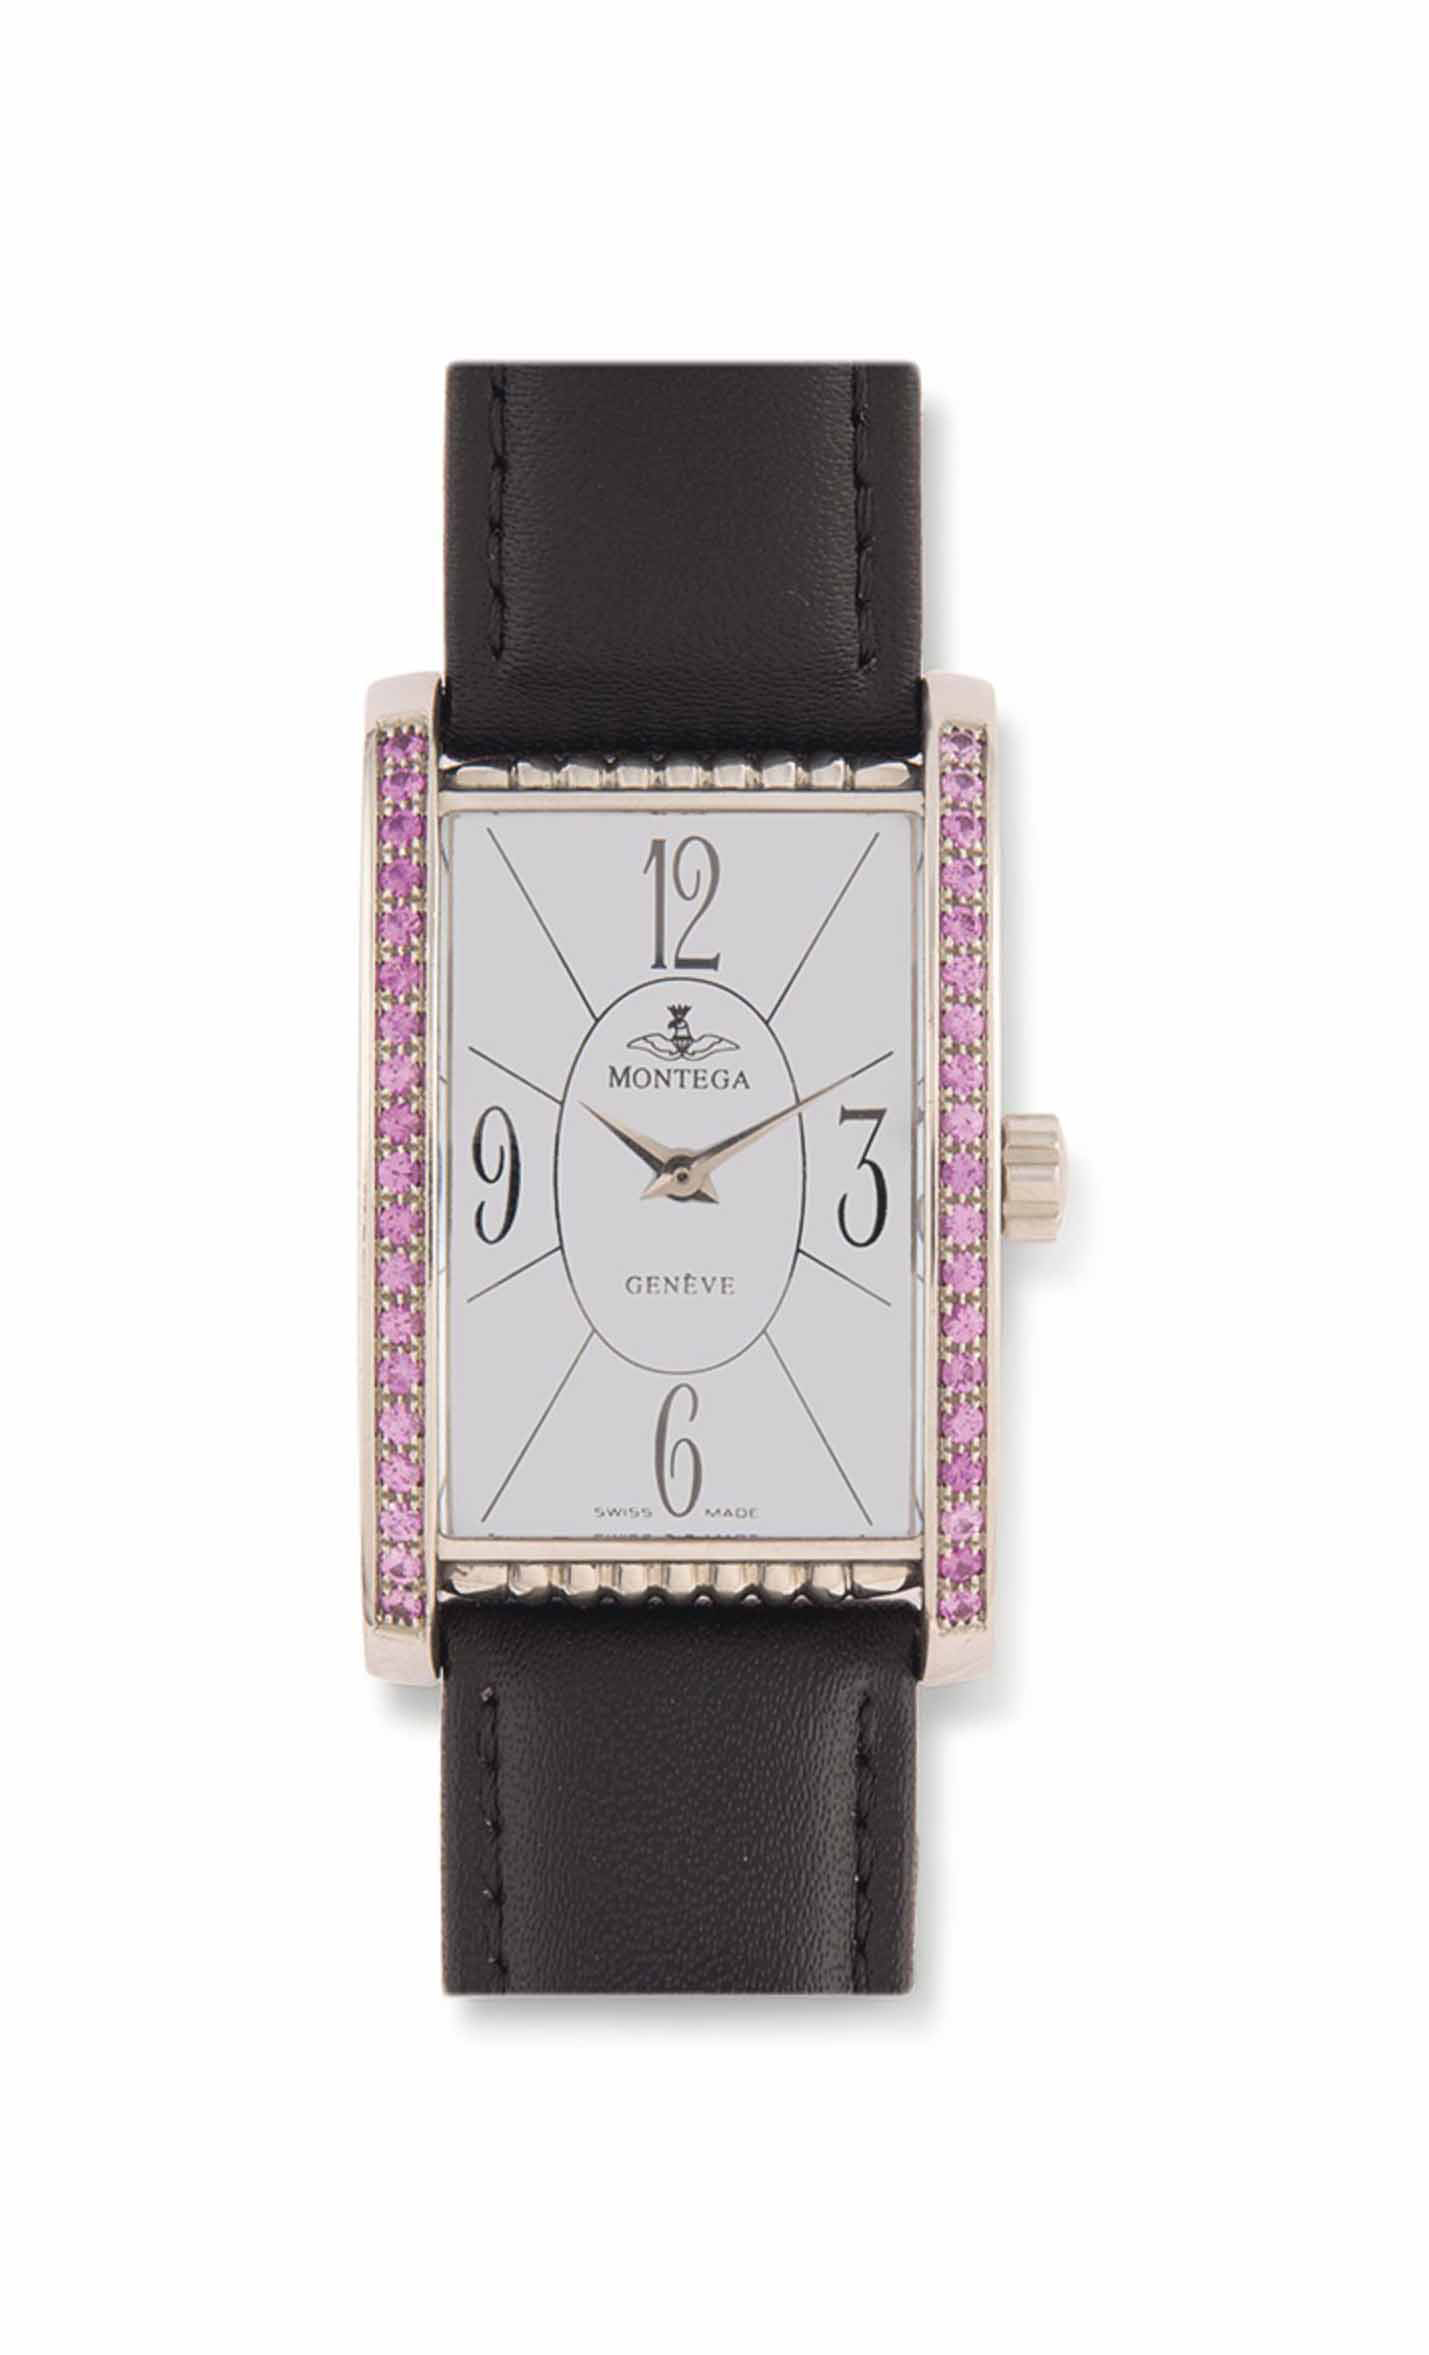 TWO MOTHER-OF-PEARL AND PINK SAPPHIRE WRISTWATCHES, BY MONTEGA